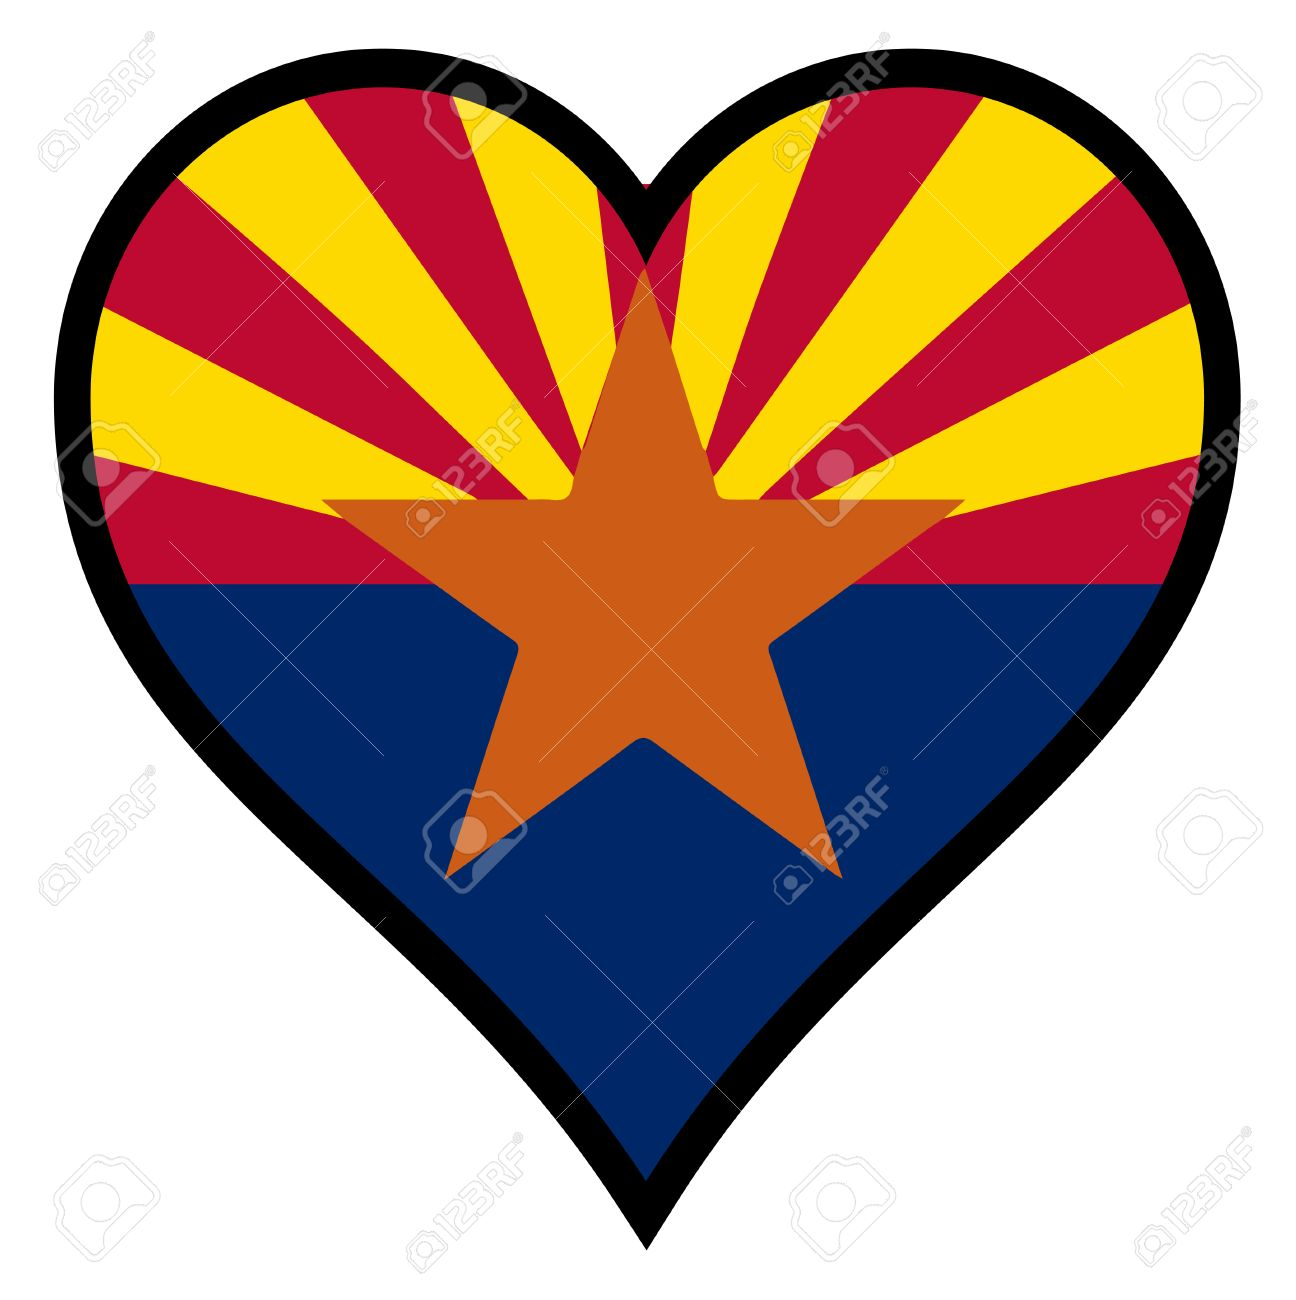 1296x1300 The Flag Of The State Of Arizona Within A Heart All Over A White